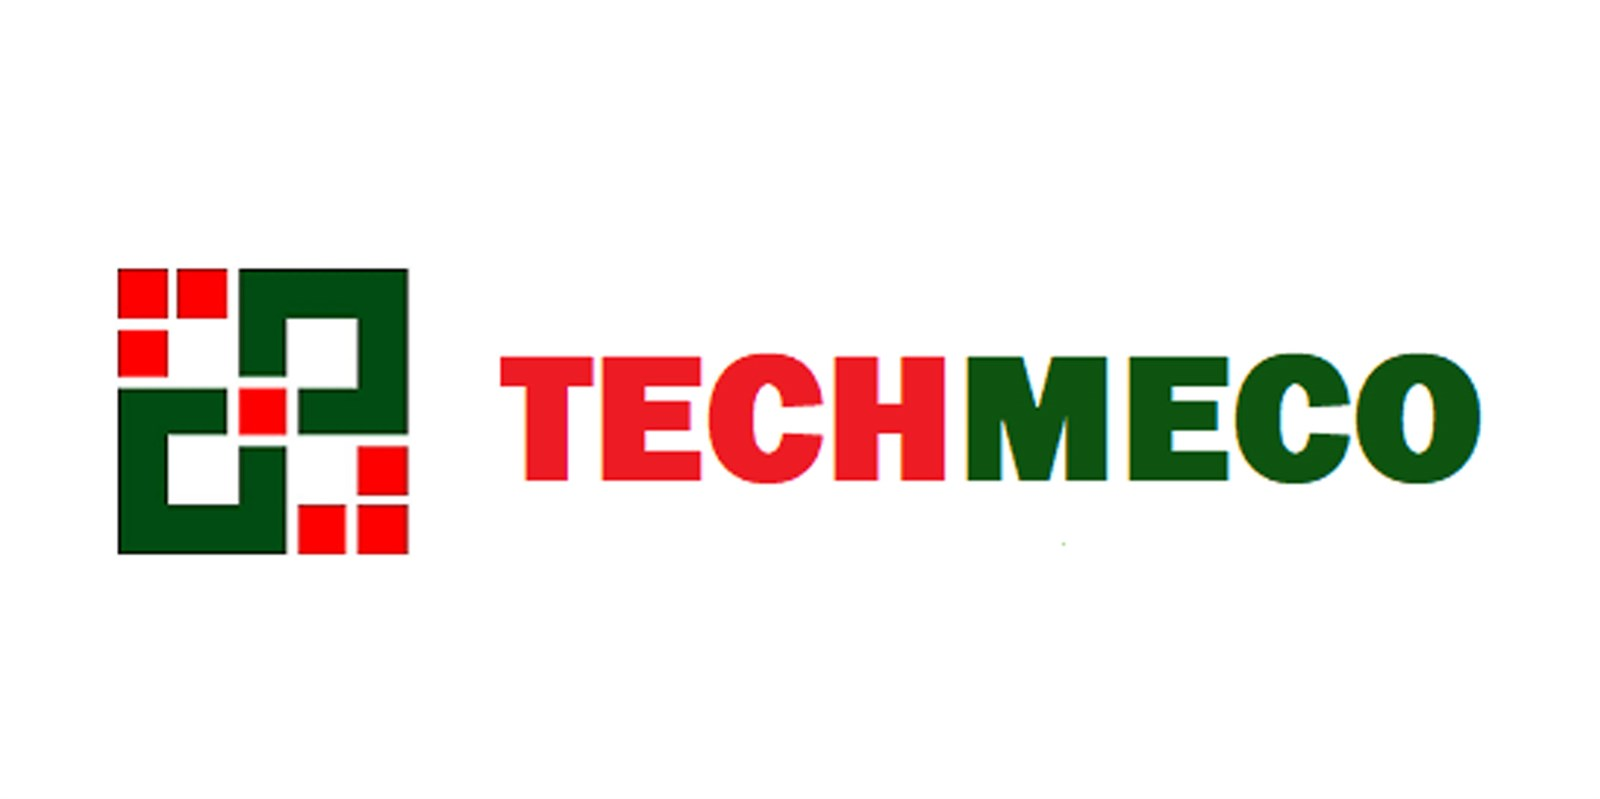 Techmeco